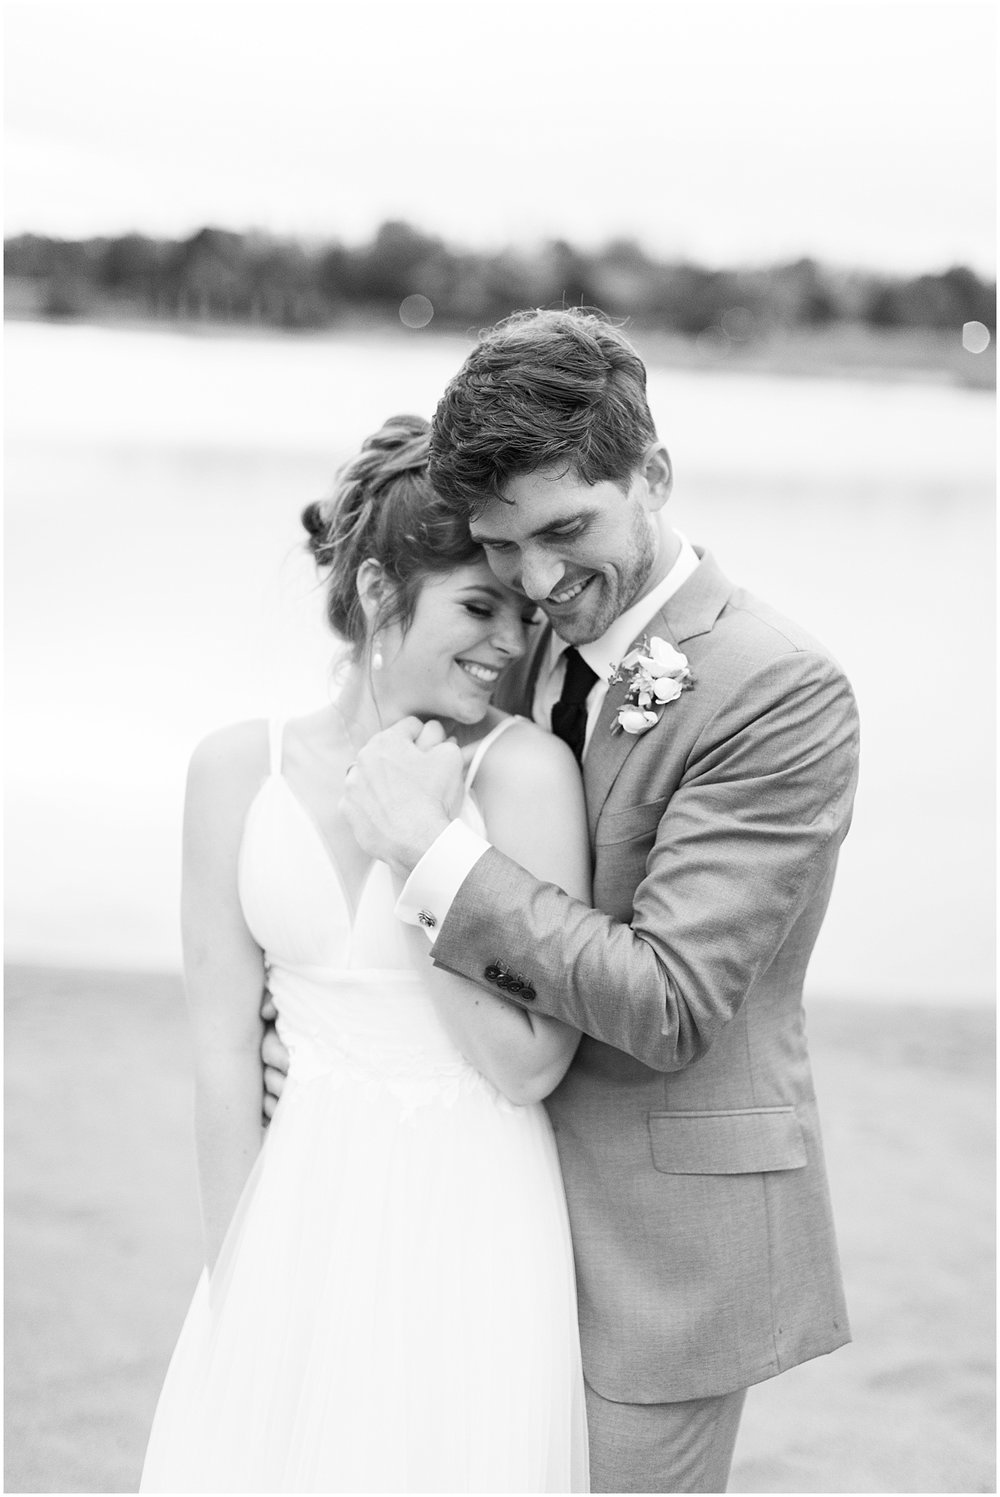 Candid romantic wedding portraits by Alyssa Parker Photography